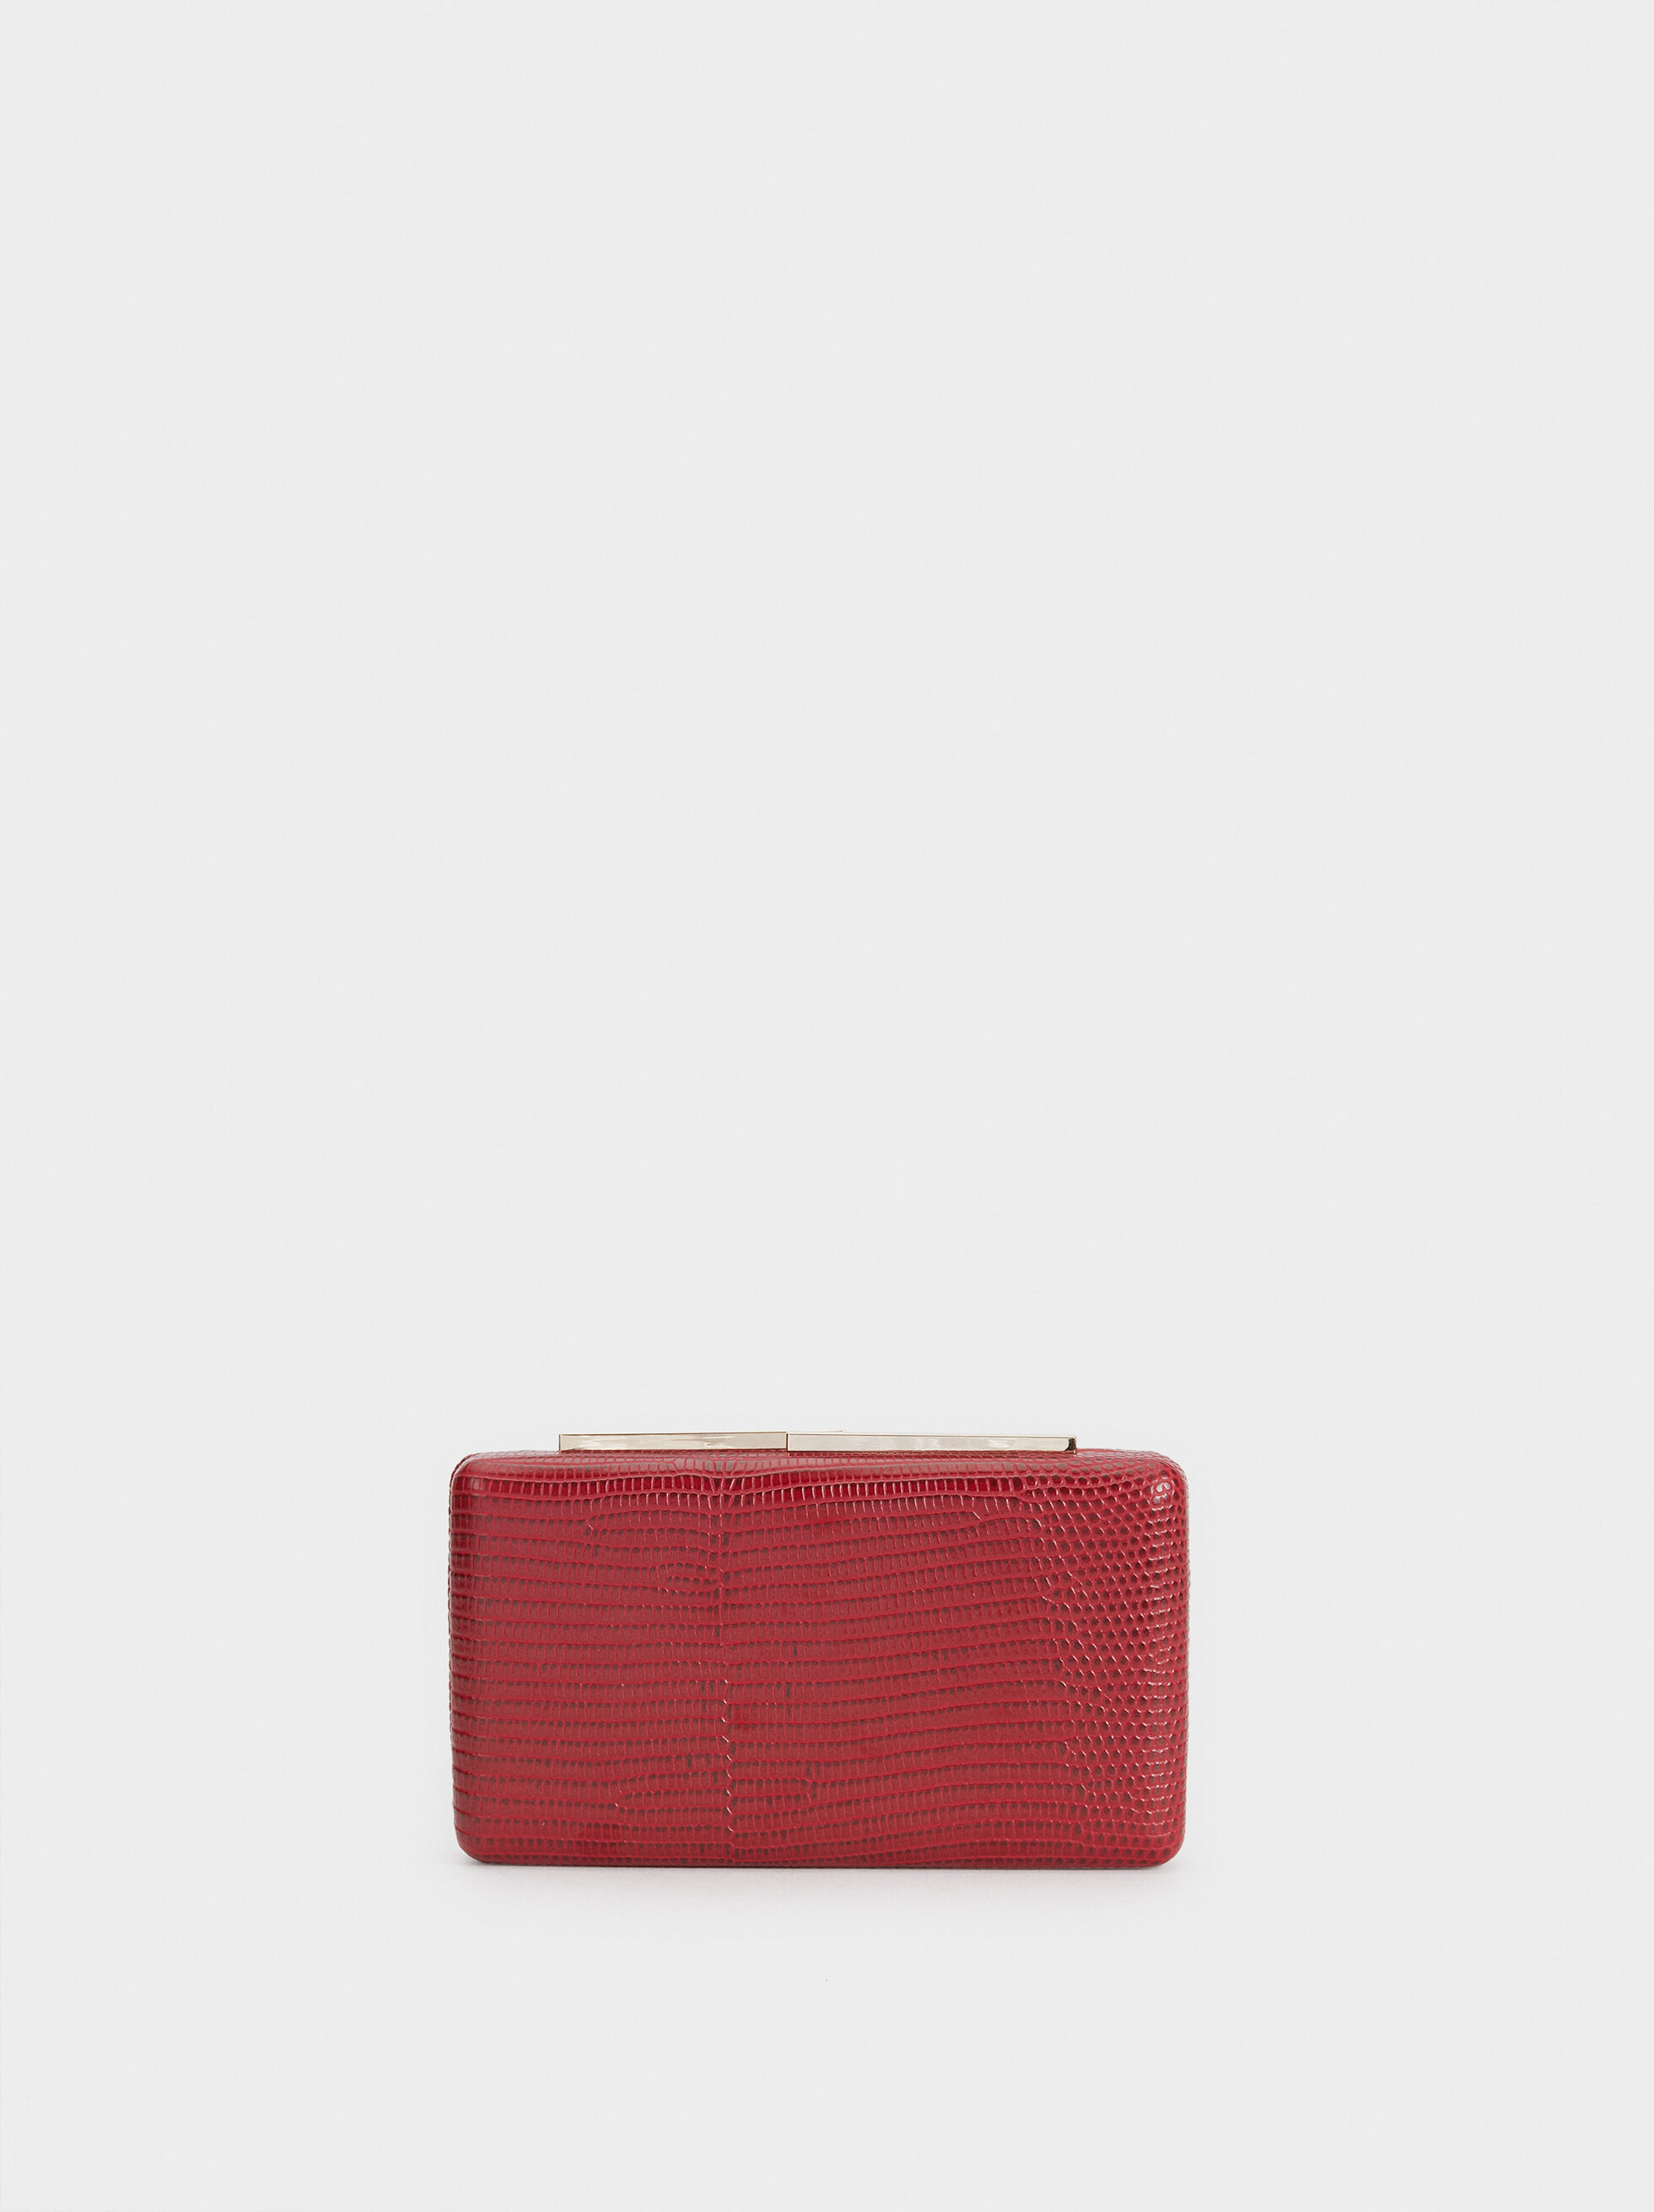 Embossed Animal Print Clutch, Red, hi-res